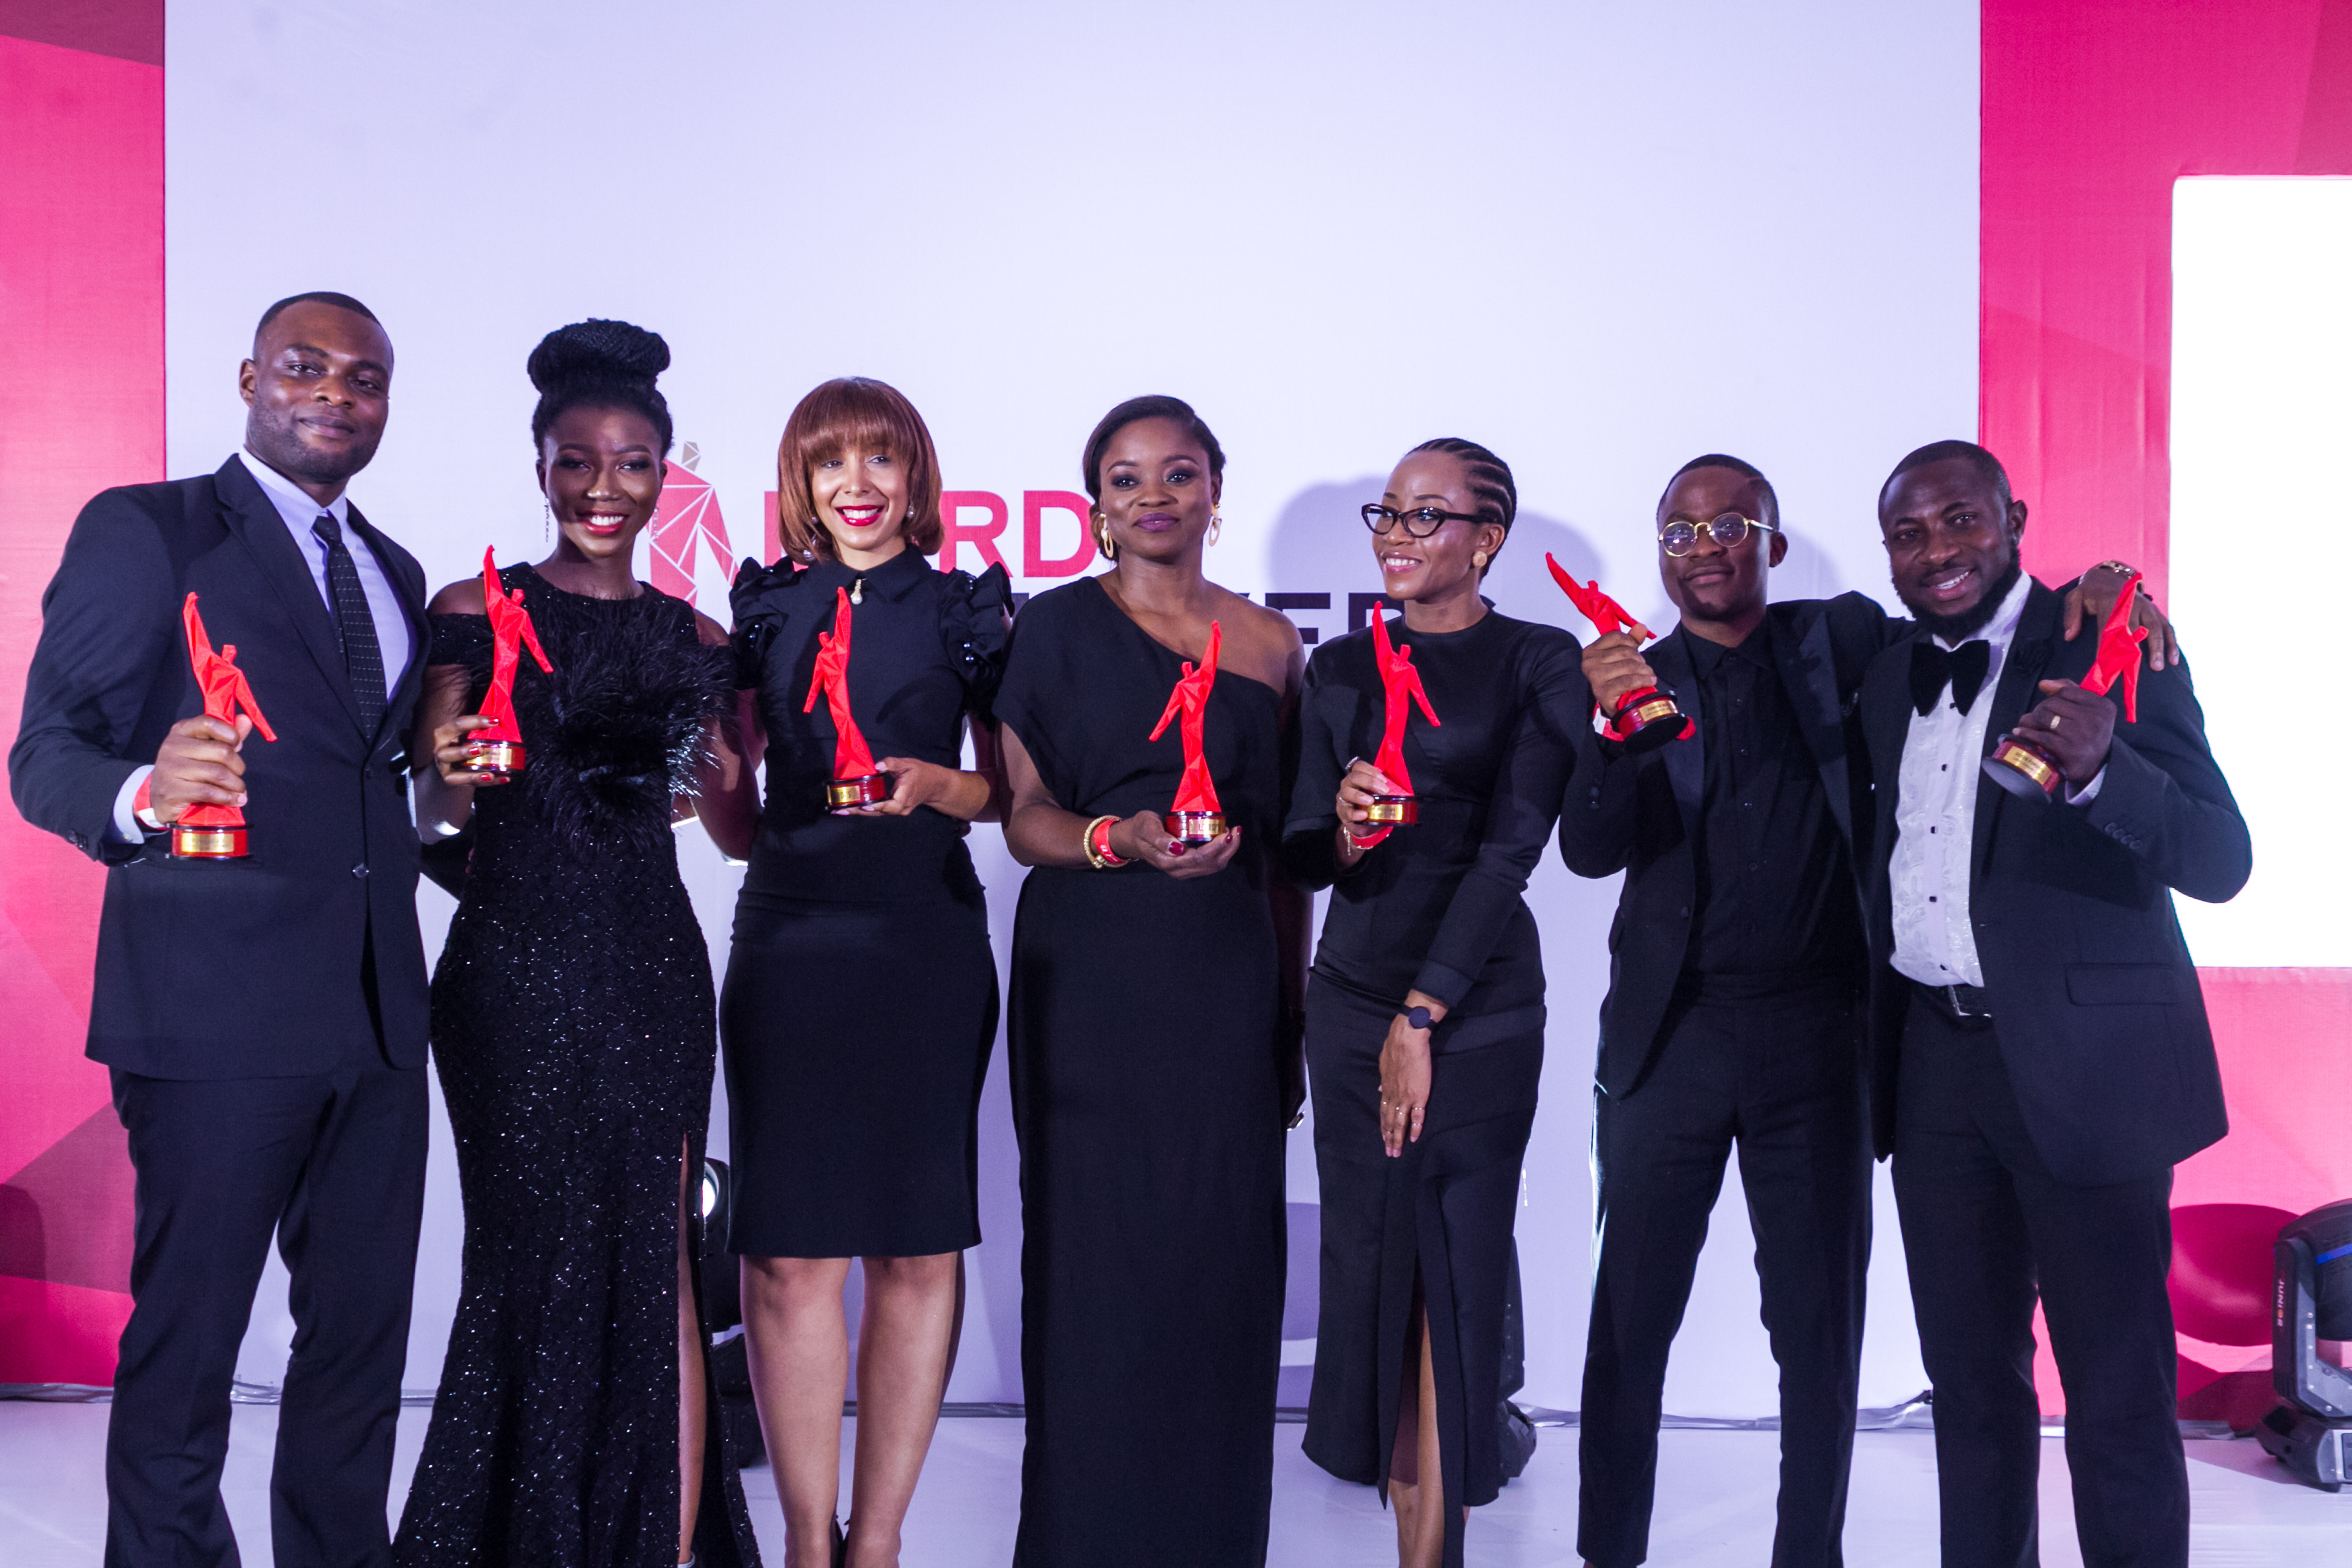 The Lord's Achievers Awards Was Fun & Inspiring! Here's What You Missed